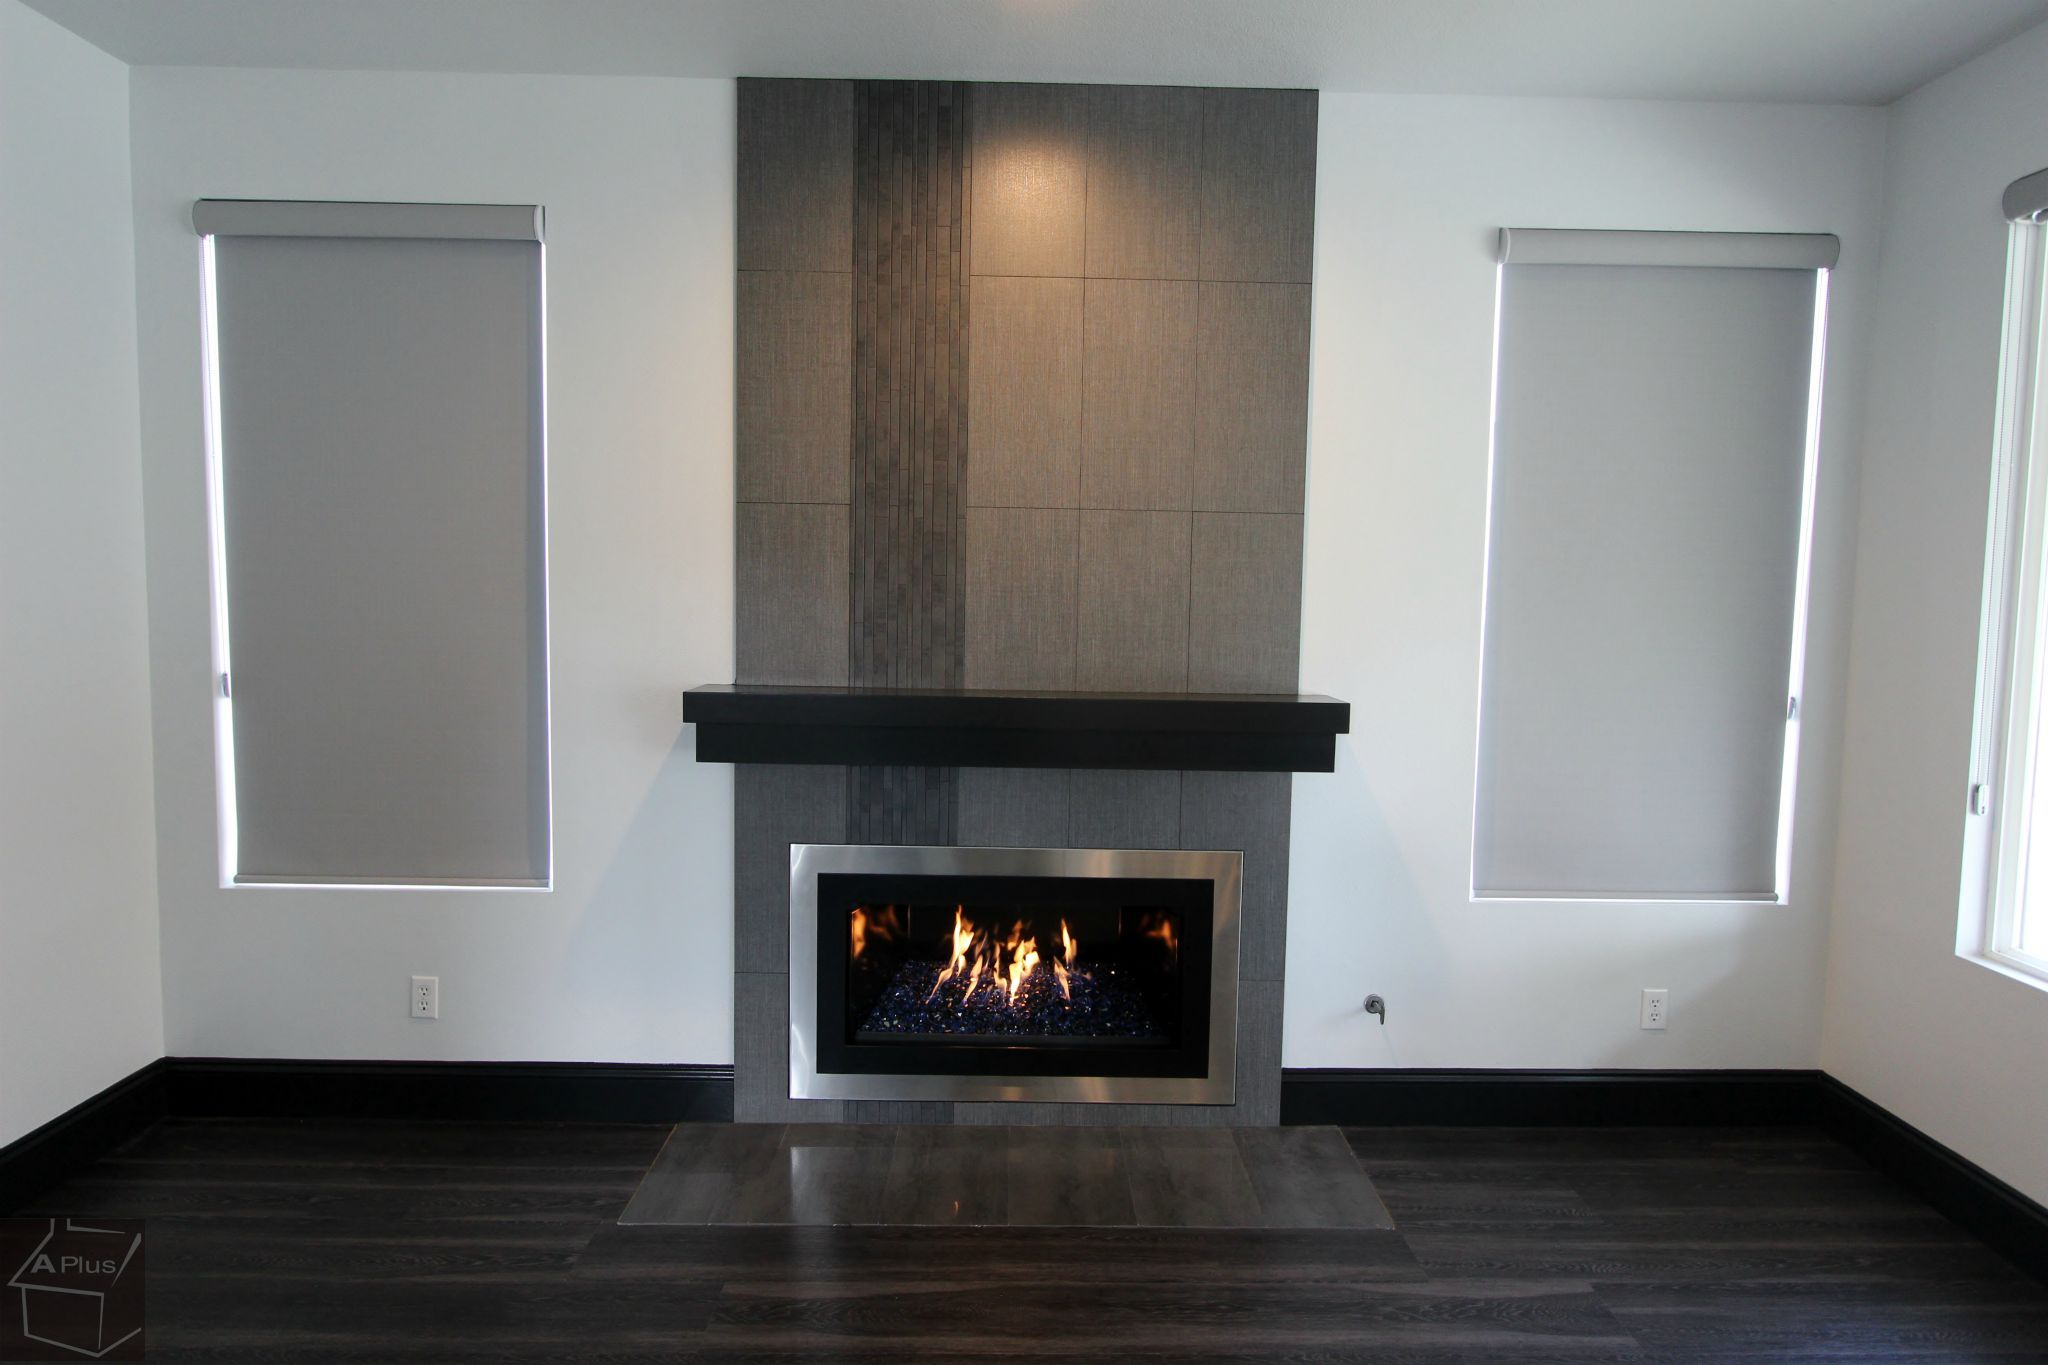 Fire place remodel with Design build Custom Modern Sophia Line ... on kitchen renovation ideas, remodeled kitchen cabinets, remodeled kitchen americana, small kitchen design ideas, remodeled kitchens with islands, counter top kitchen ideas, skylight kitchen ideas, double oven kitchen ideas, remodeling your kitchen ideas, microwave kitchen ideas, wood floors kitchen ideas, small kitchen remodeling ideas, remodeled contemporary kitchen, diy kitchen remodel ideas, historic kitchen ideas, spacious kitchen ideas, basic kitchen remodel ideas, pantry kitchen ideas, traditional kitchen design ideas, 2014 kitchen remodeling ideas,